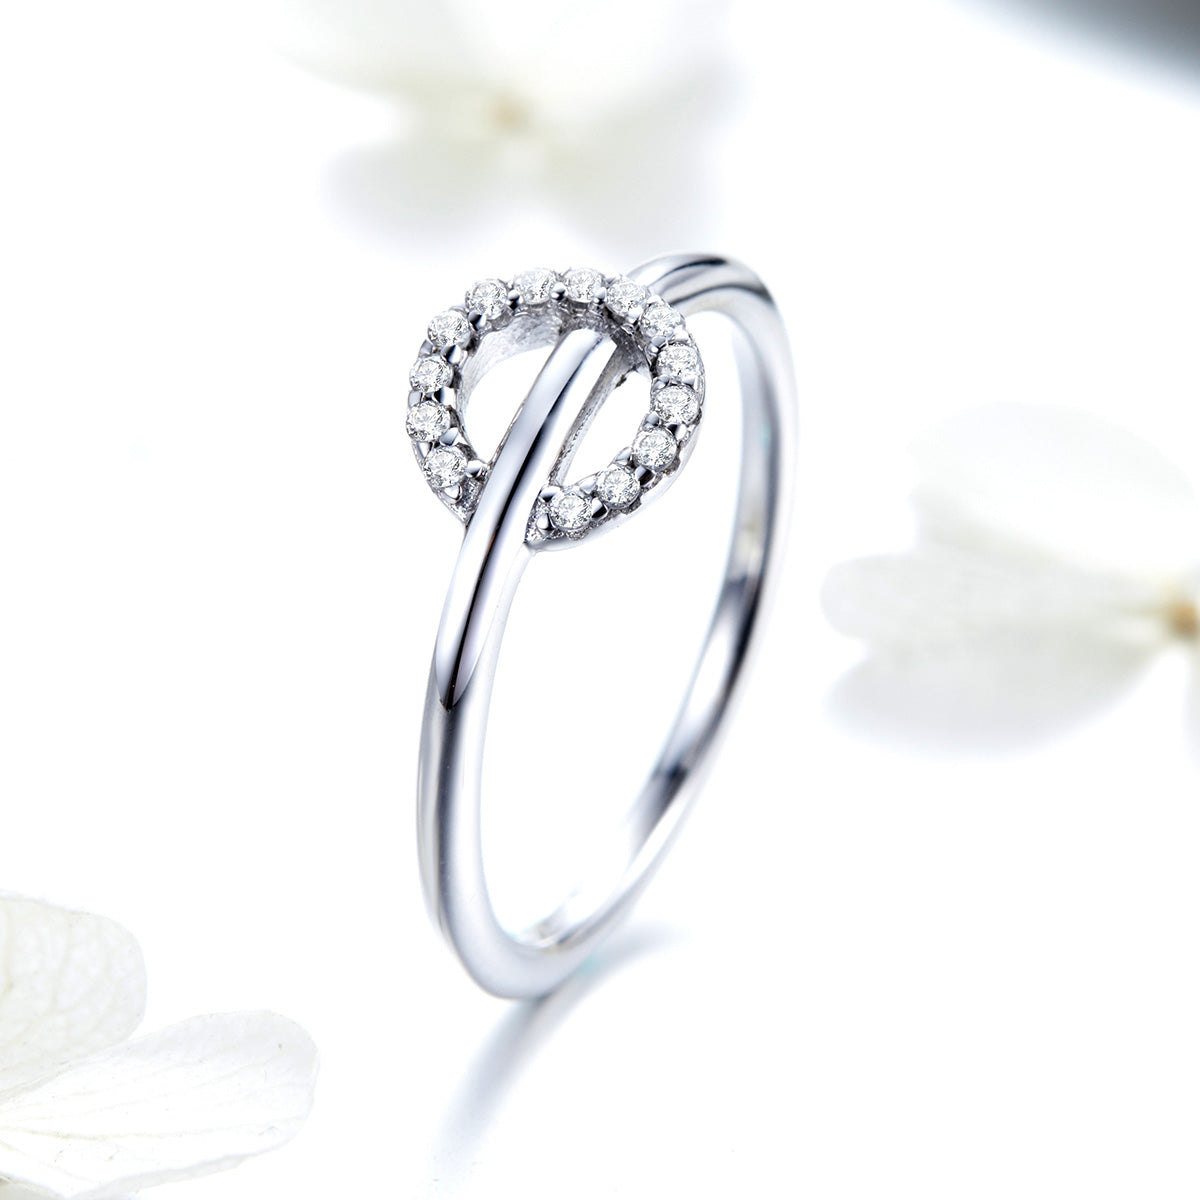 S925 Sterling Silver Single Ring White Gold Plated Cubic Zirconia Ring